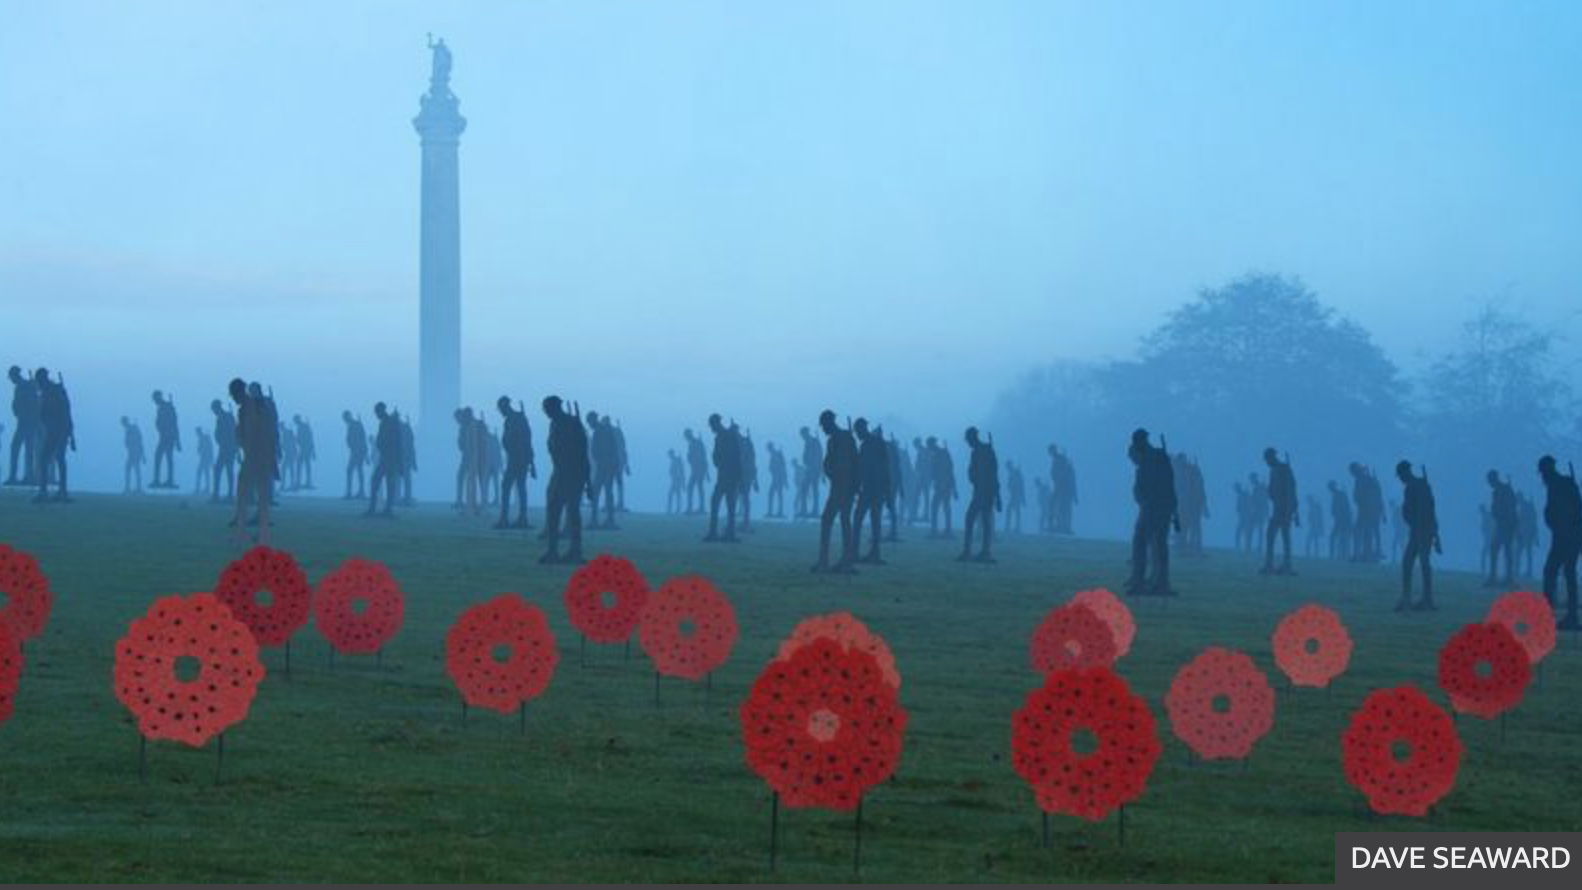 Silhouettes and Poppy Wreaths